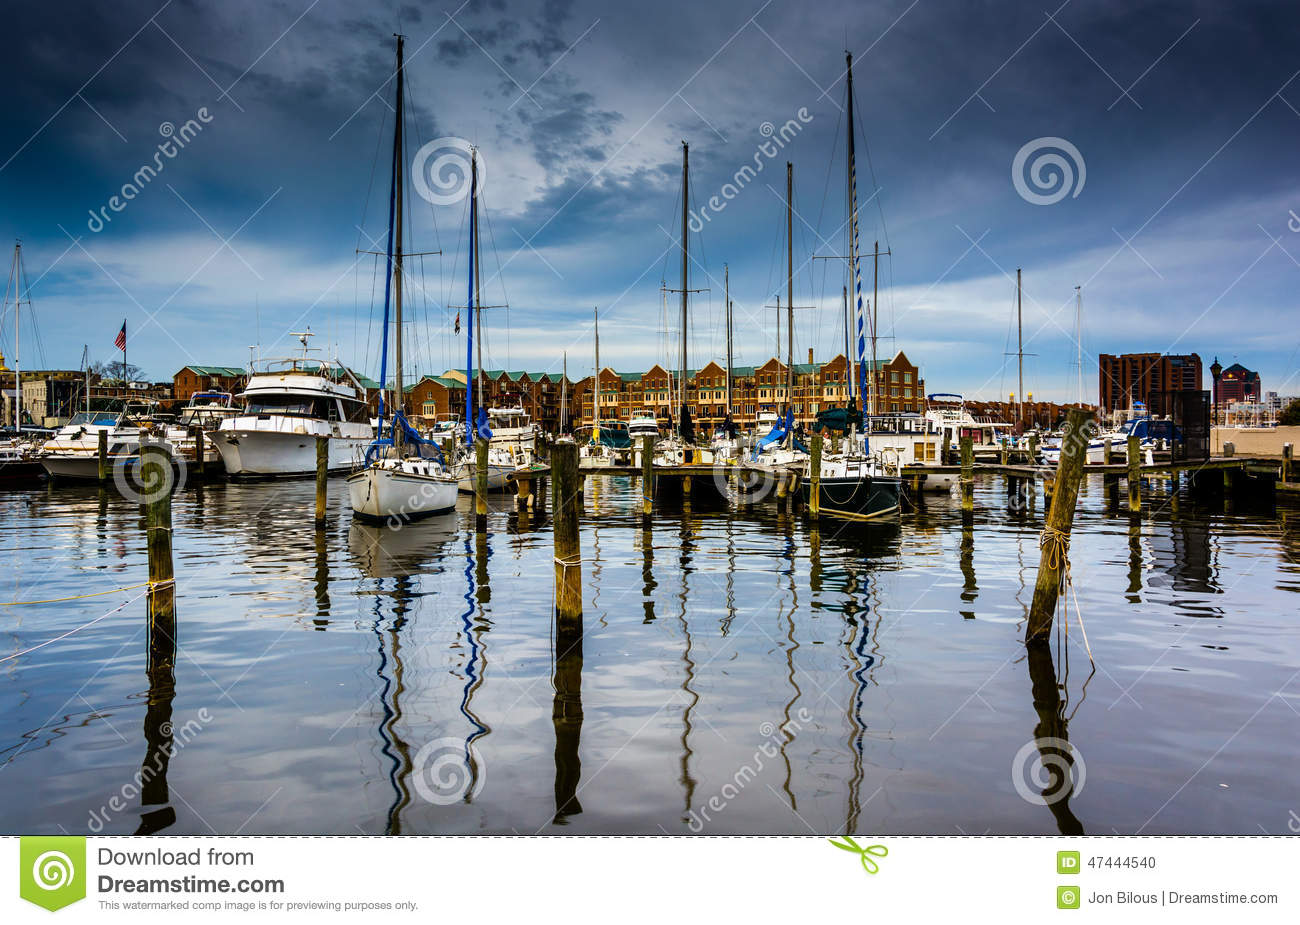 Marina w kantonie, Baltimore, Maryland